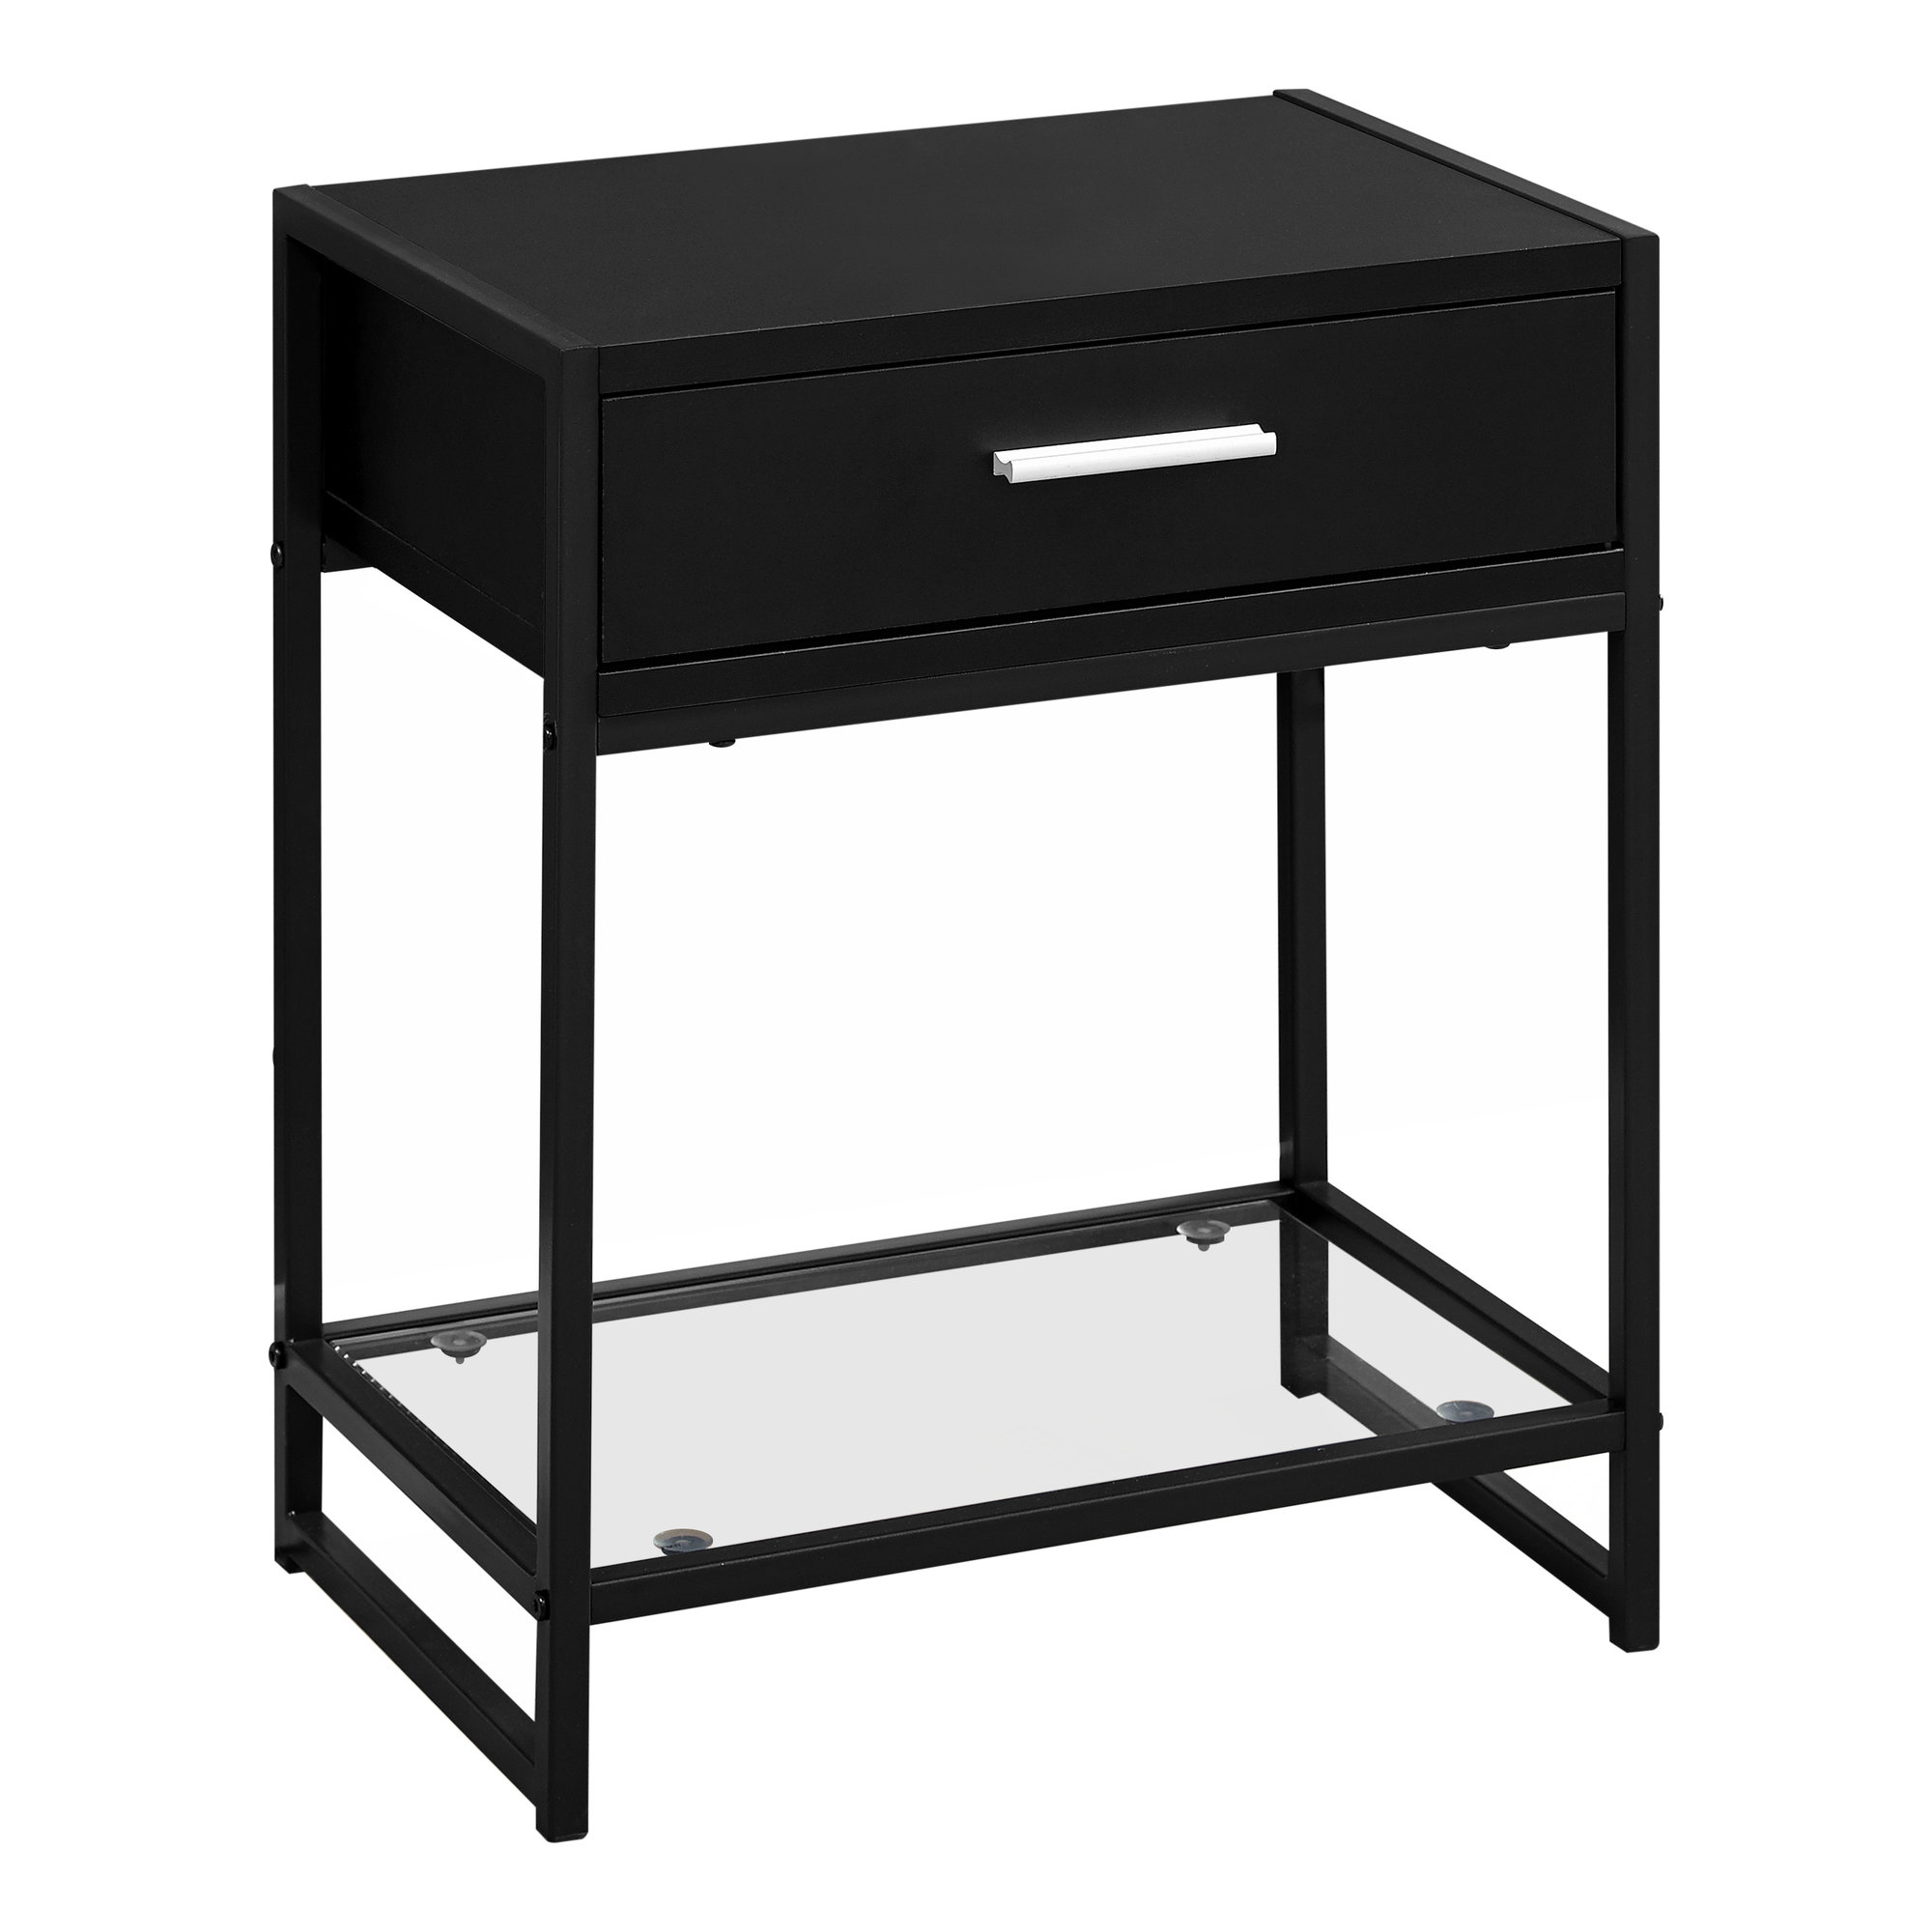 """12"""" x 18"""" x 22"""" BlackwithBlack Metal  Tempered Glass  Accent Table"""